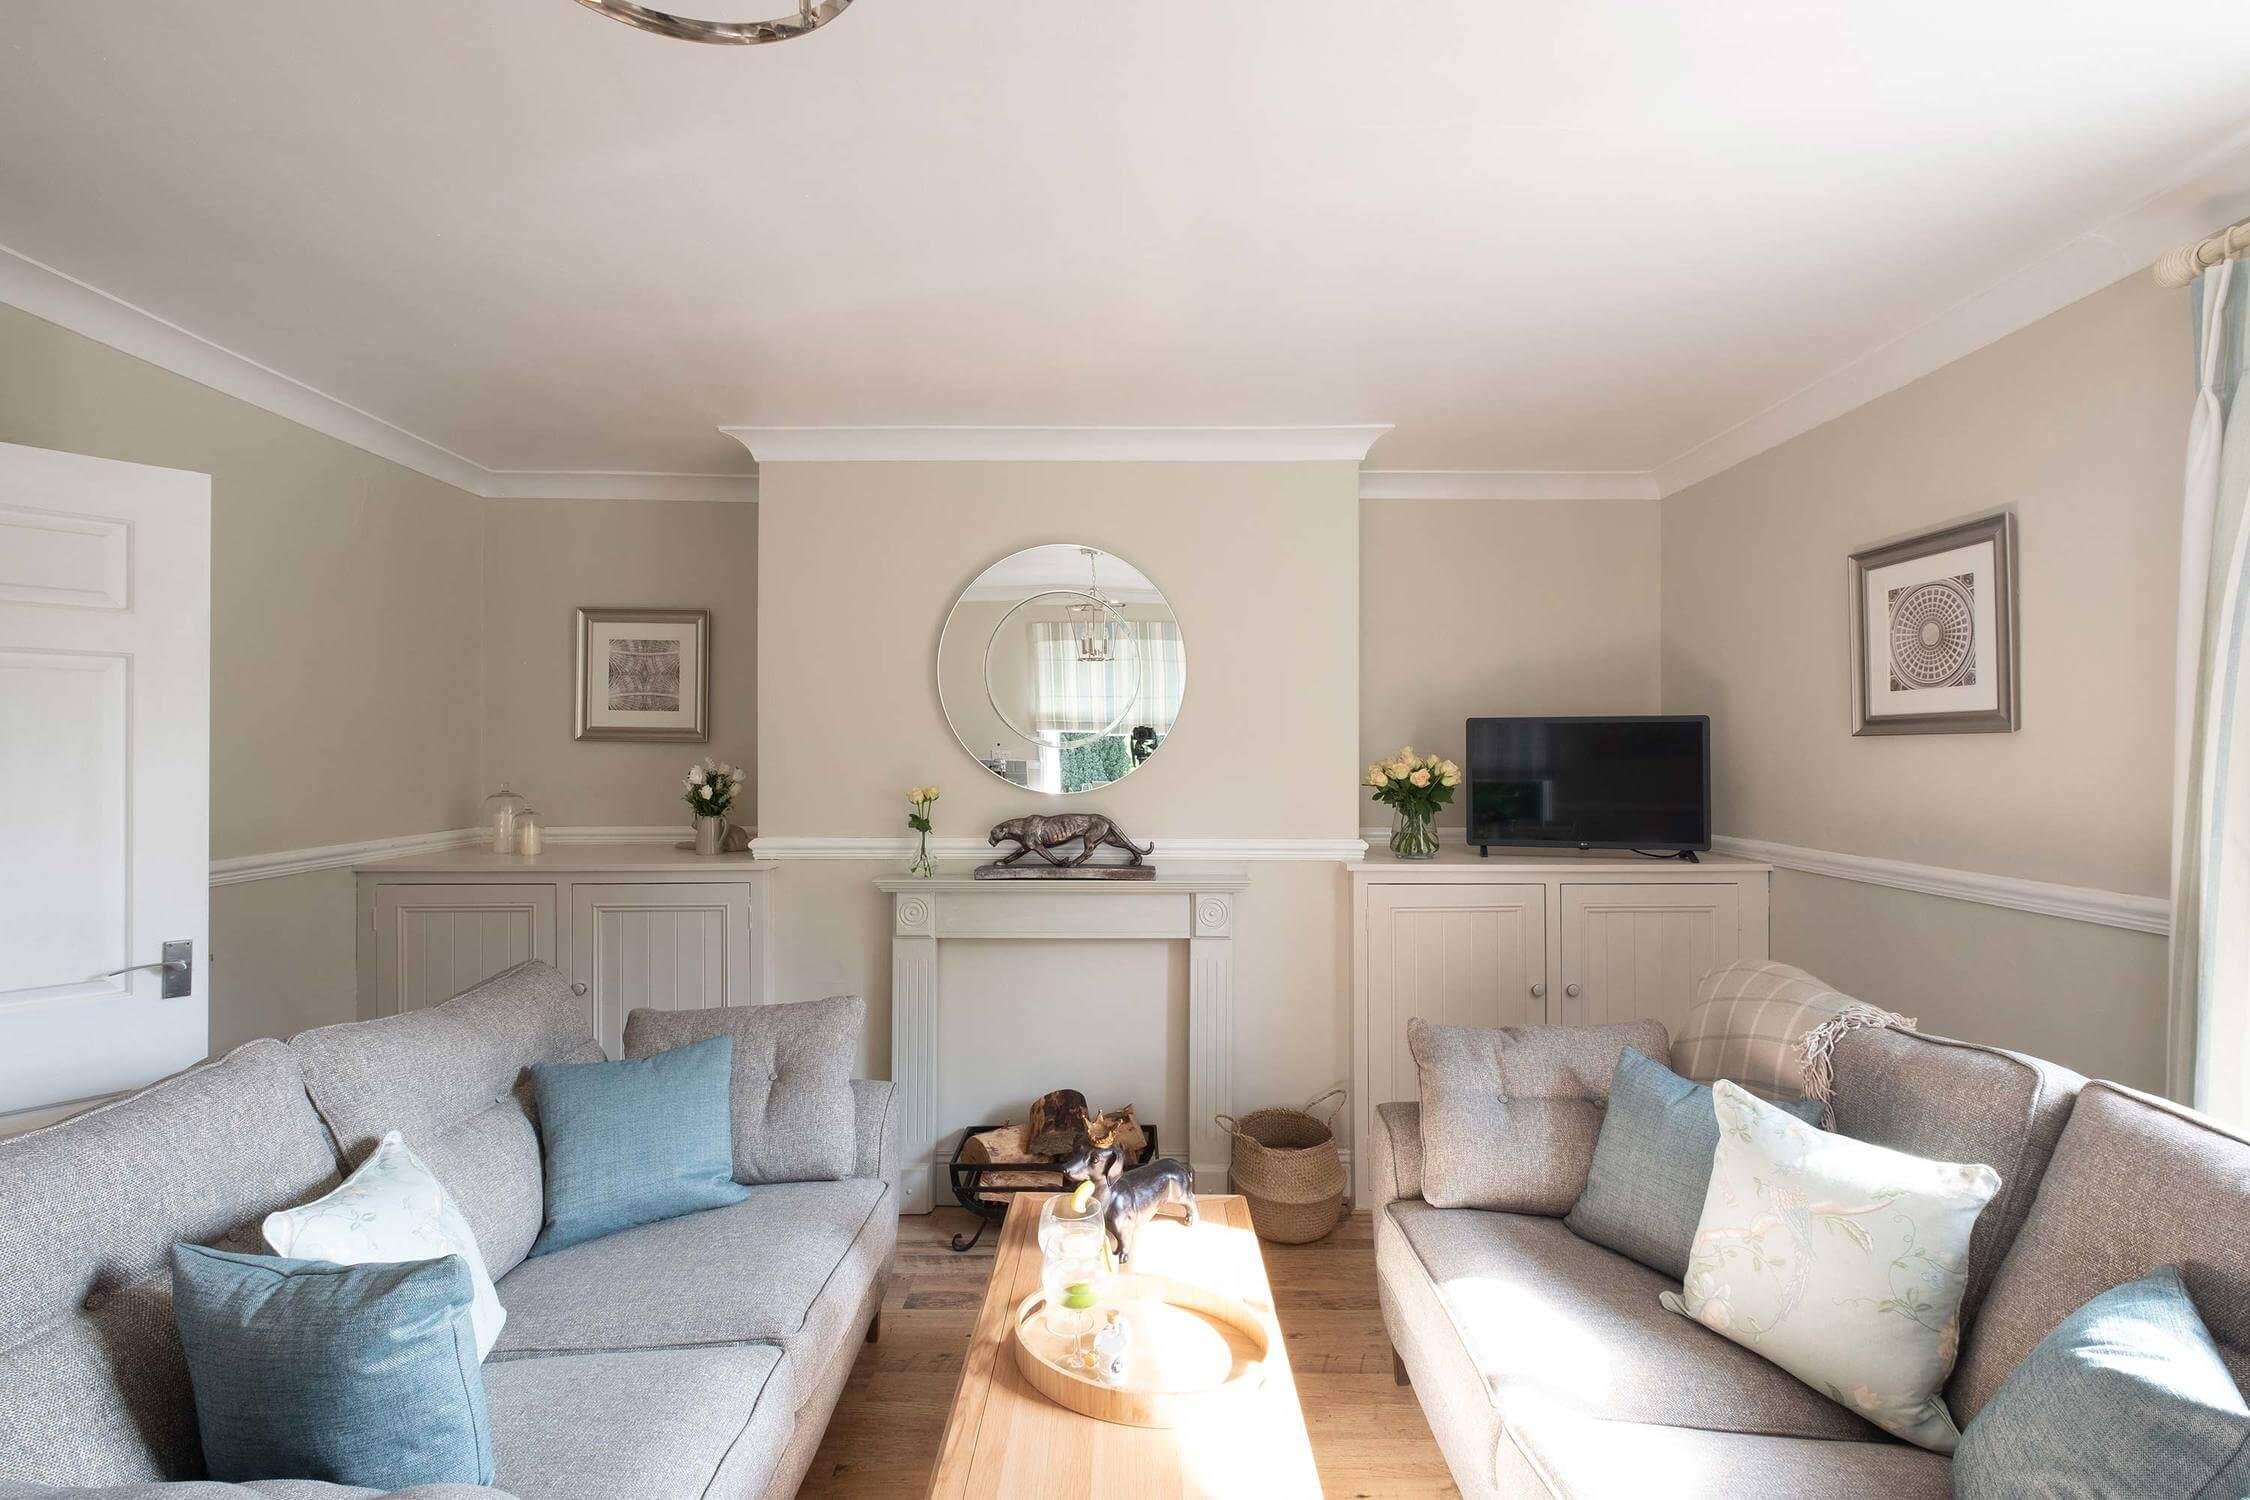 Property Image 1 - Stylish Holiday Home Near Pannett Park